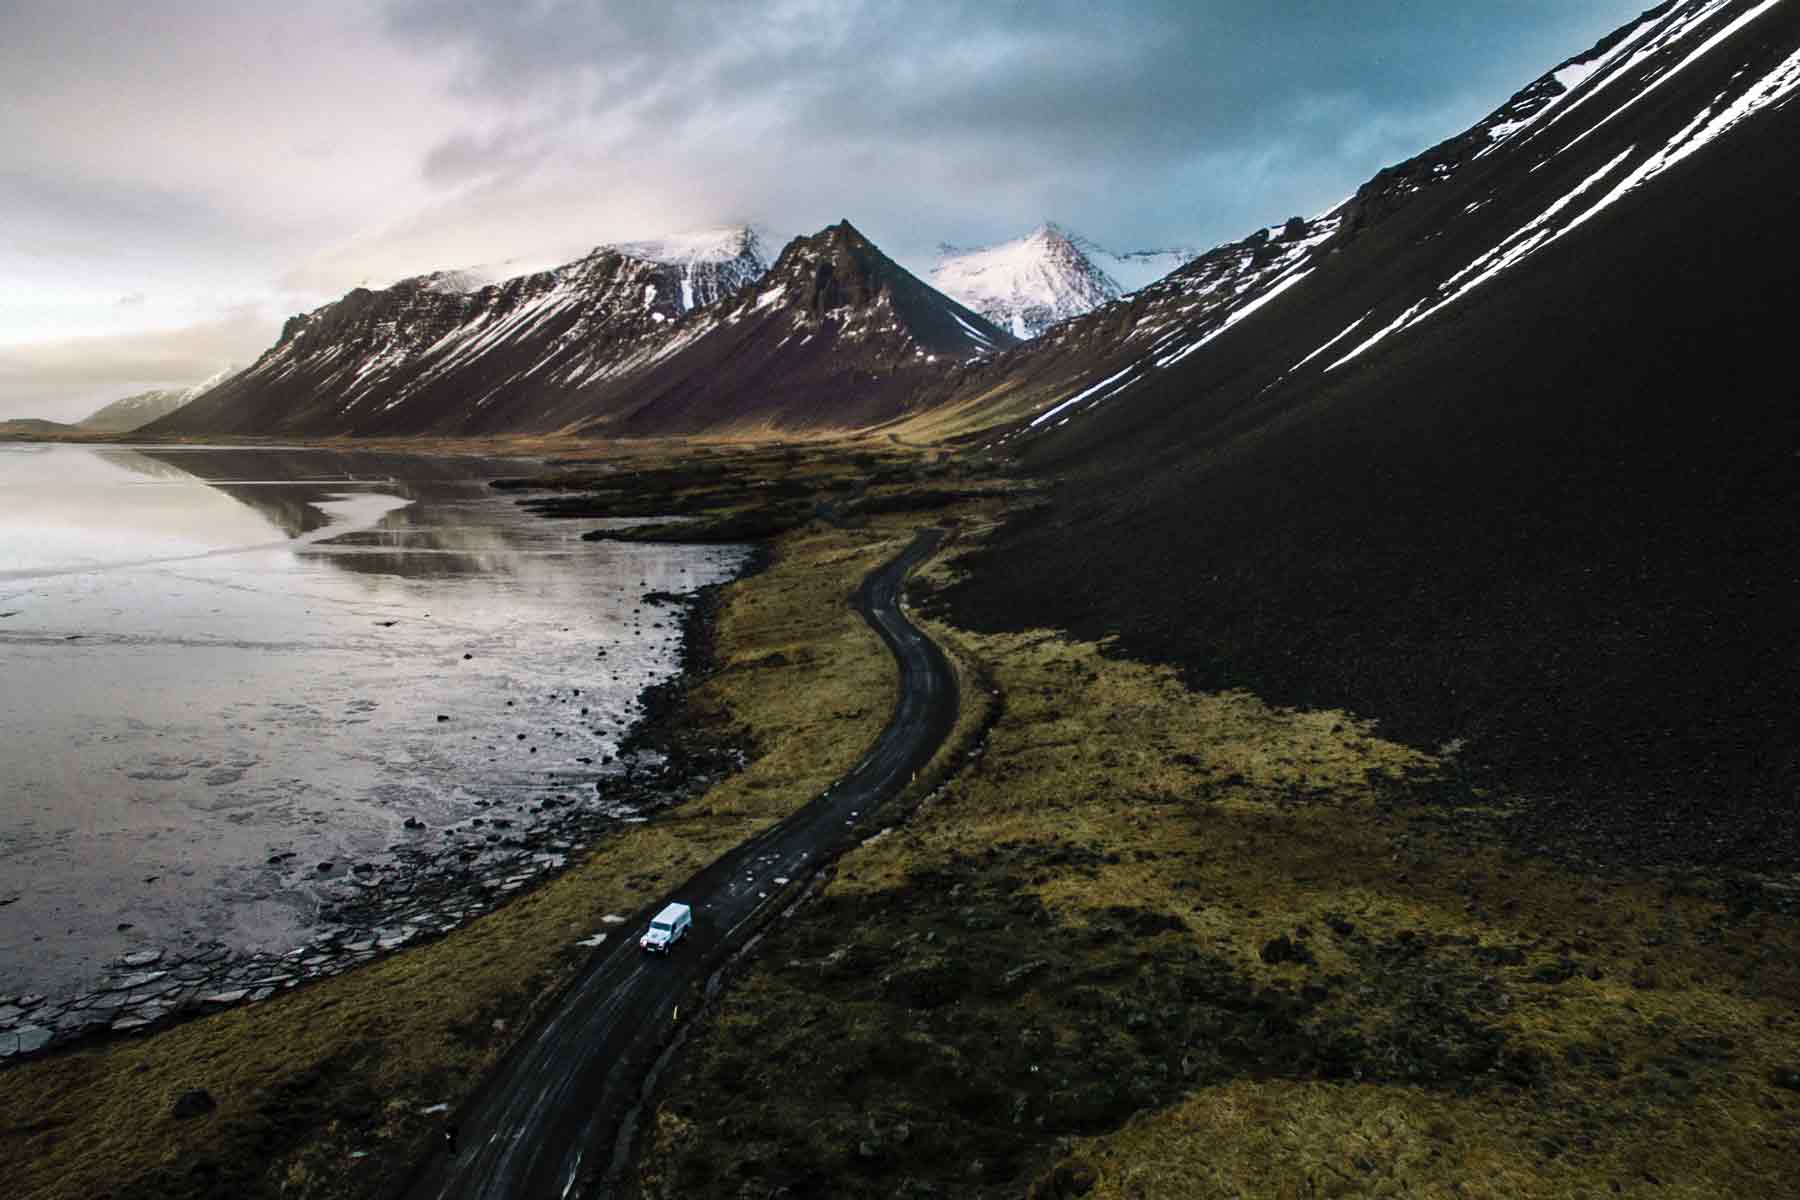 The Icelandic solitude makes for one of the world's most fascinating natural landscapes   Photo: Andre Filipe via Unsplash.